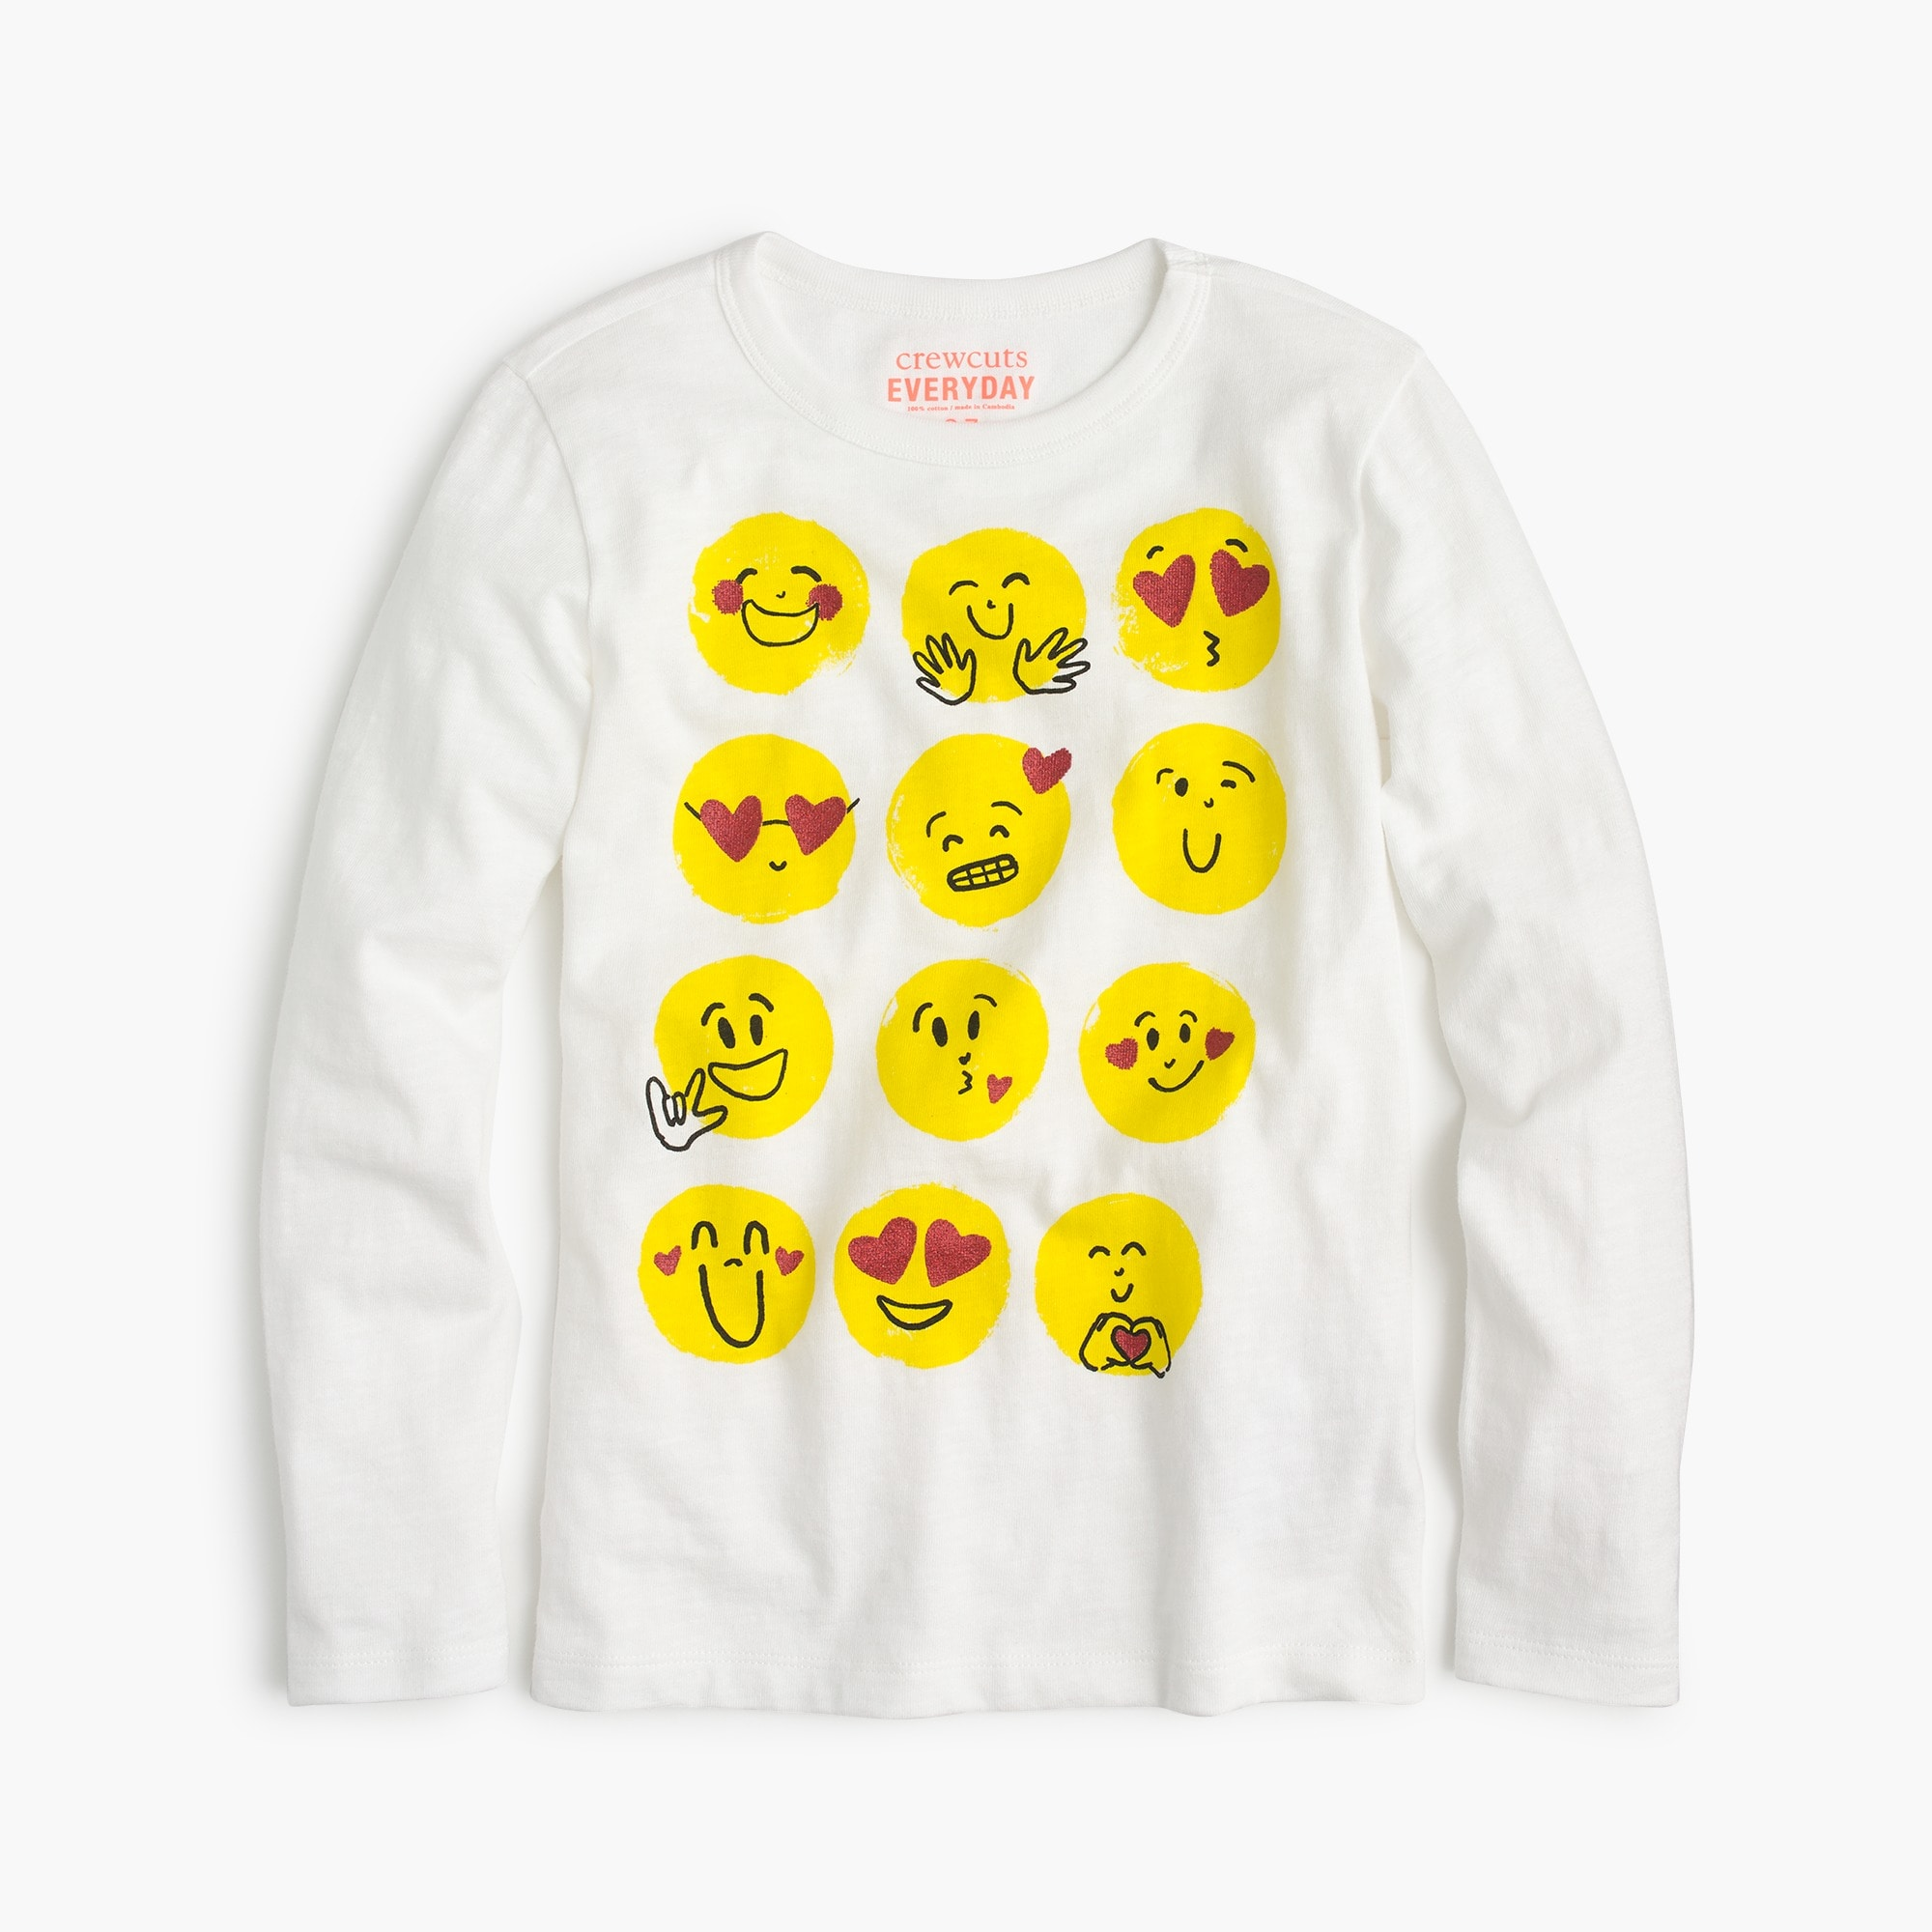 Image 1 for Girl's multi-emoji T-shirt